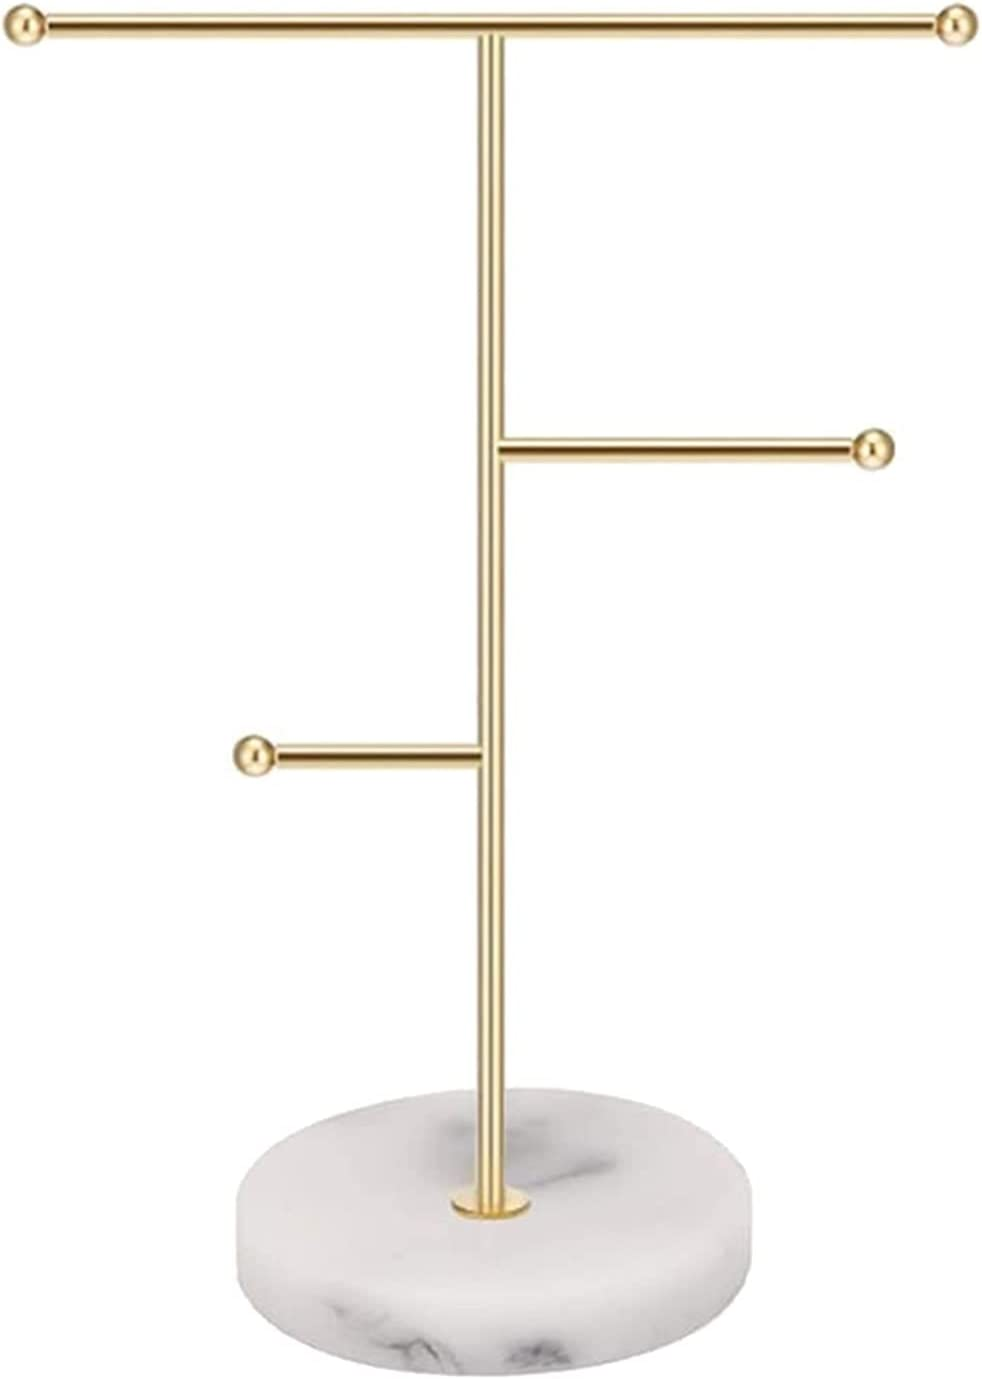 LXQS Virginia Beach Mall New item Jewelry Display Stand White Pattern Marble Decorativ Simple